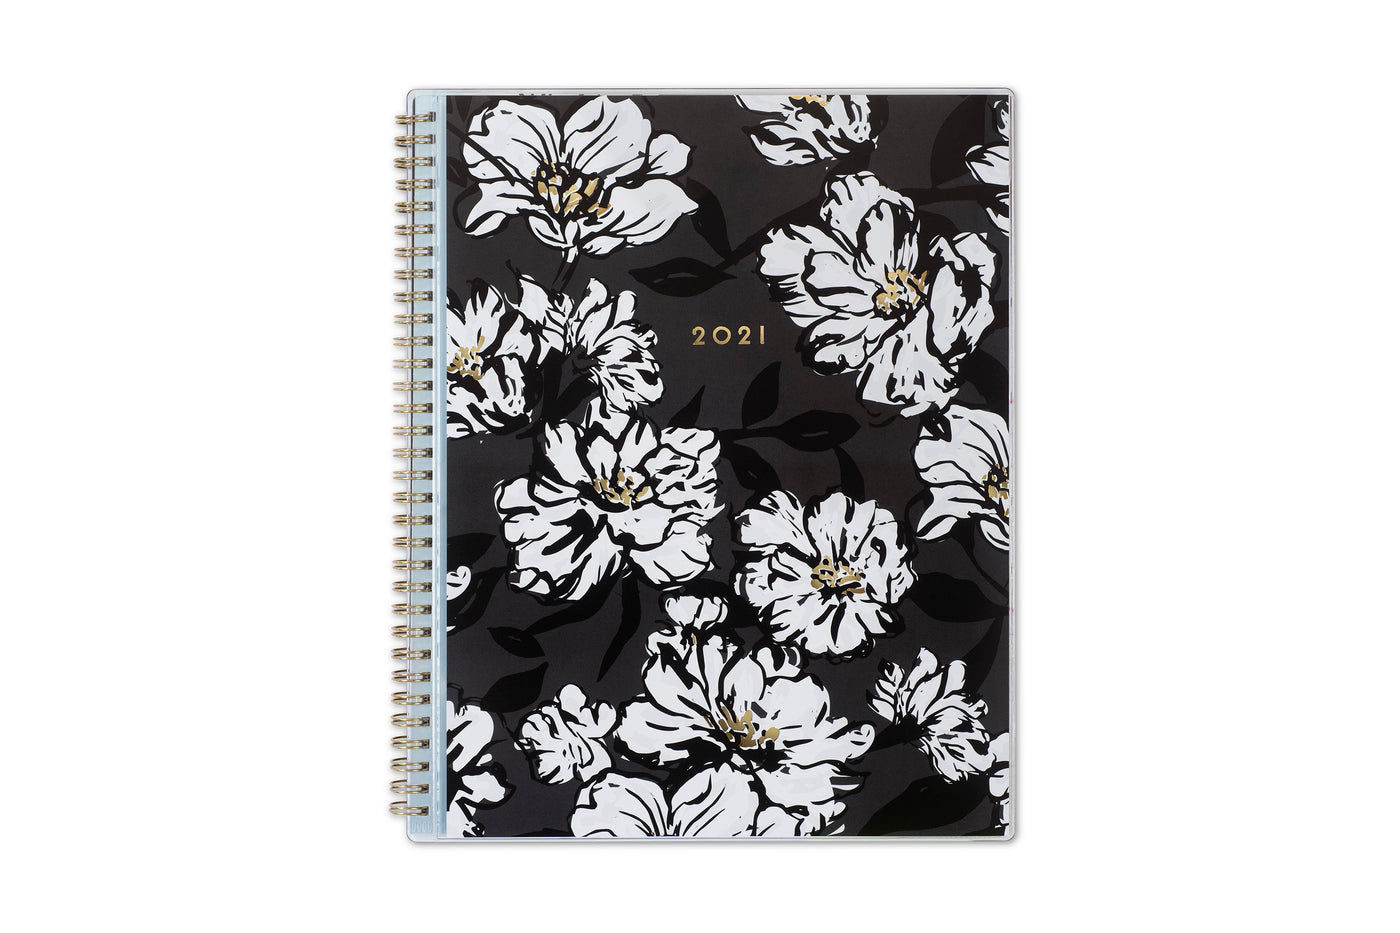 8.5x11 weekly monthly planner for 2021 new year featuring silver twin wire-o binding, black/gray background, white florals and gold accents